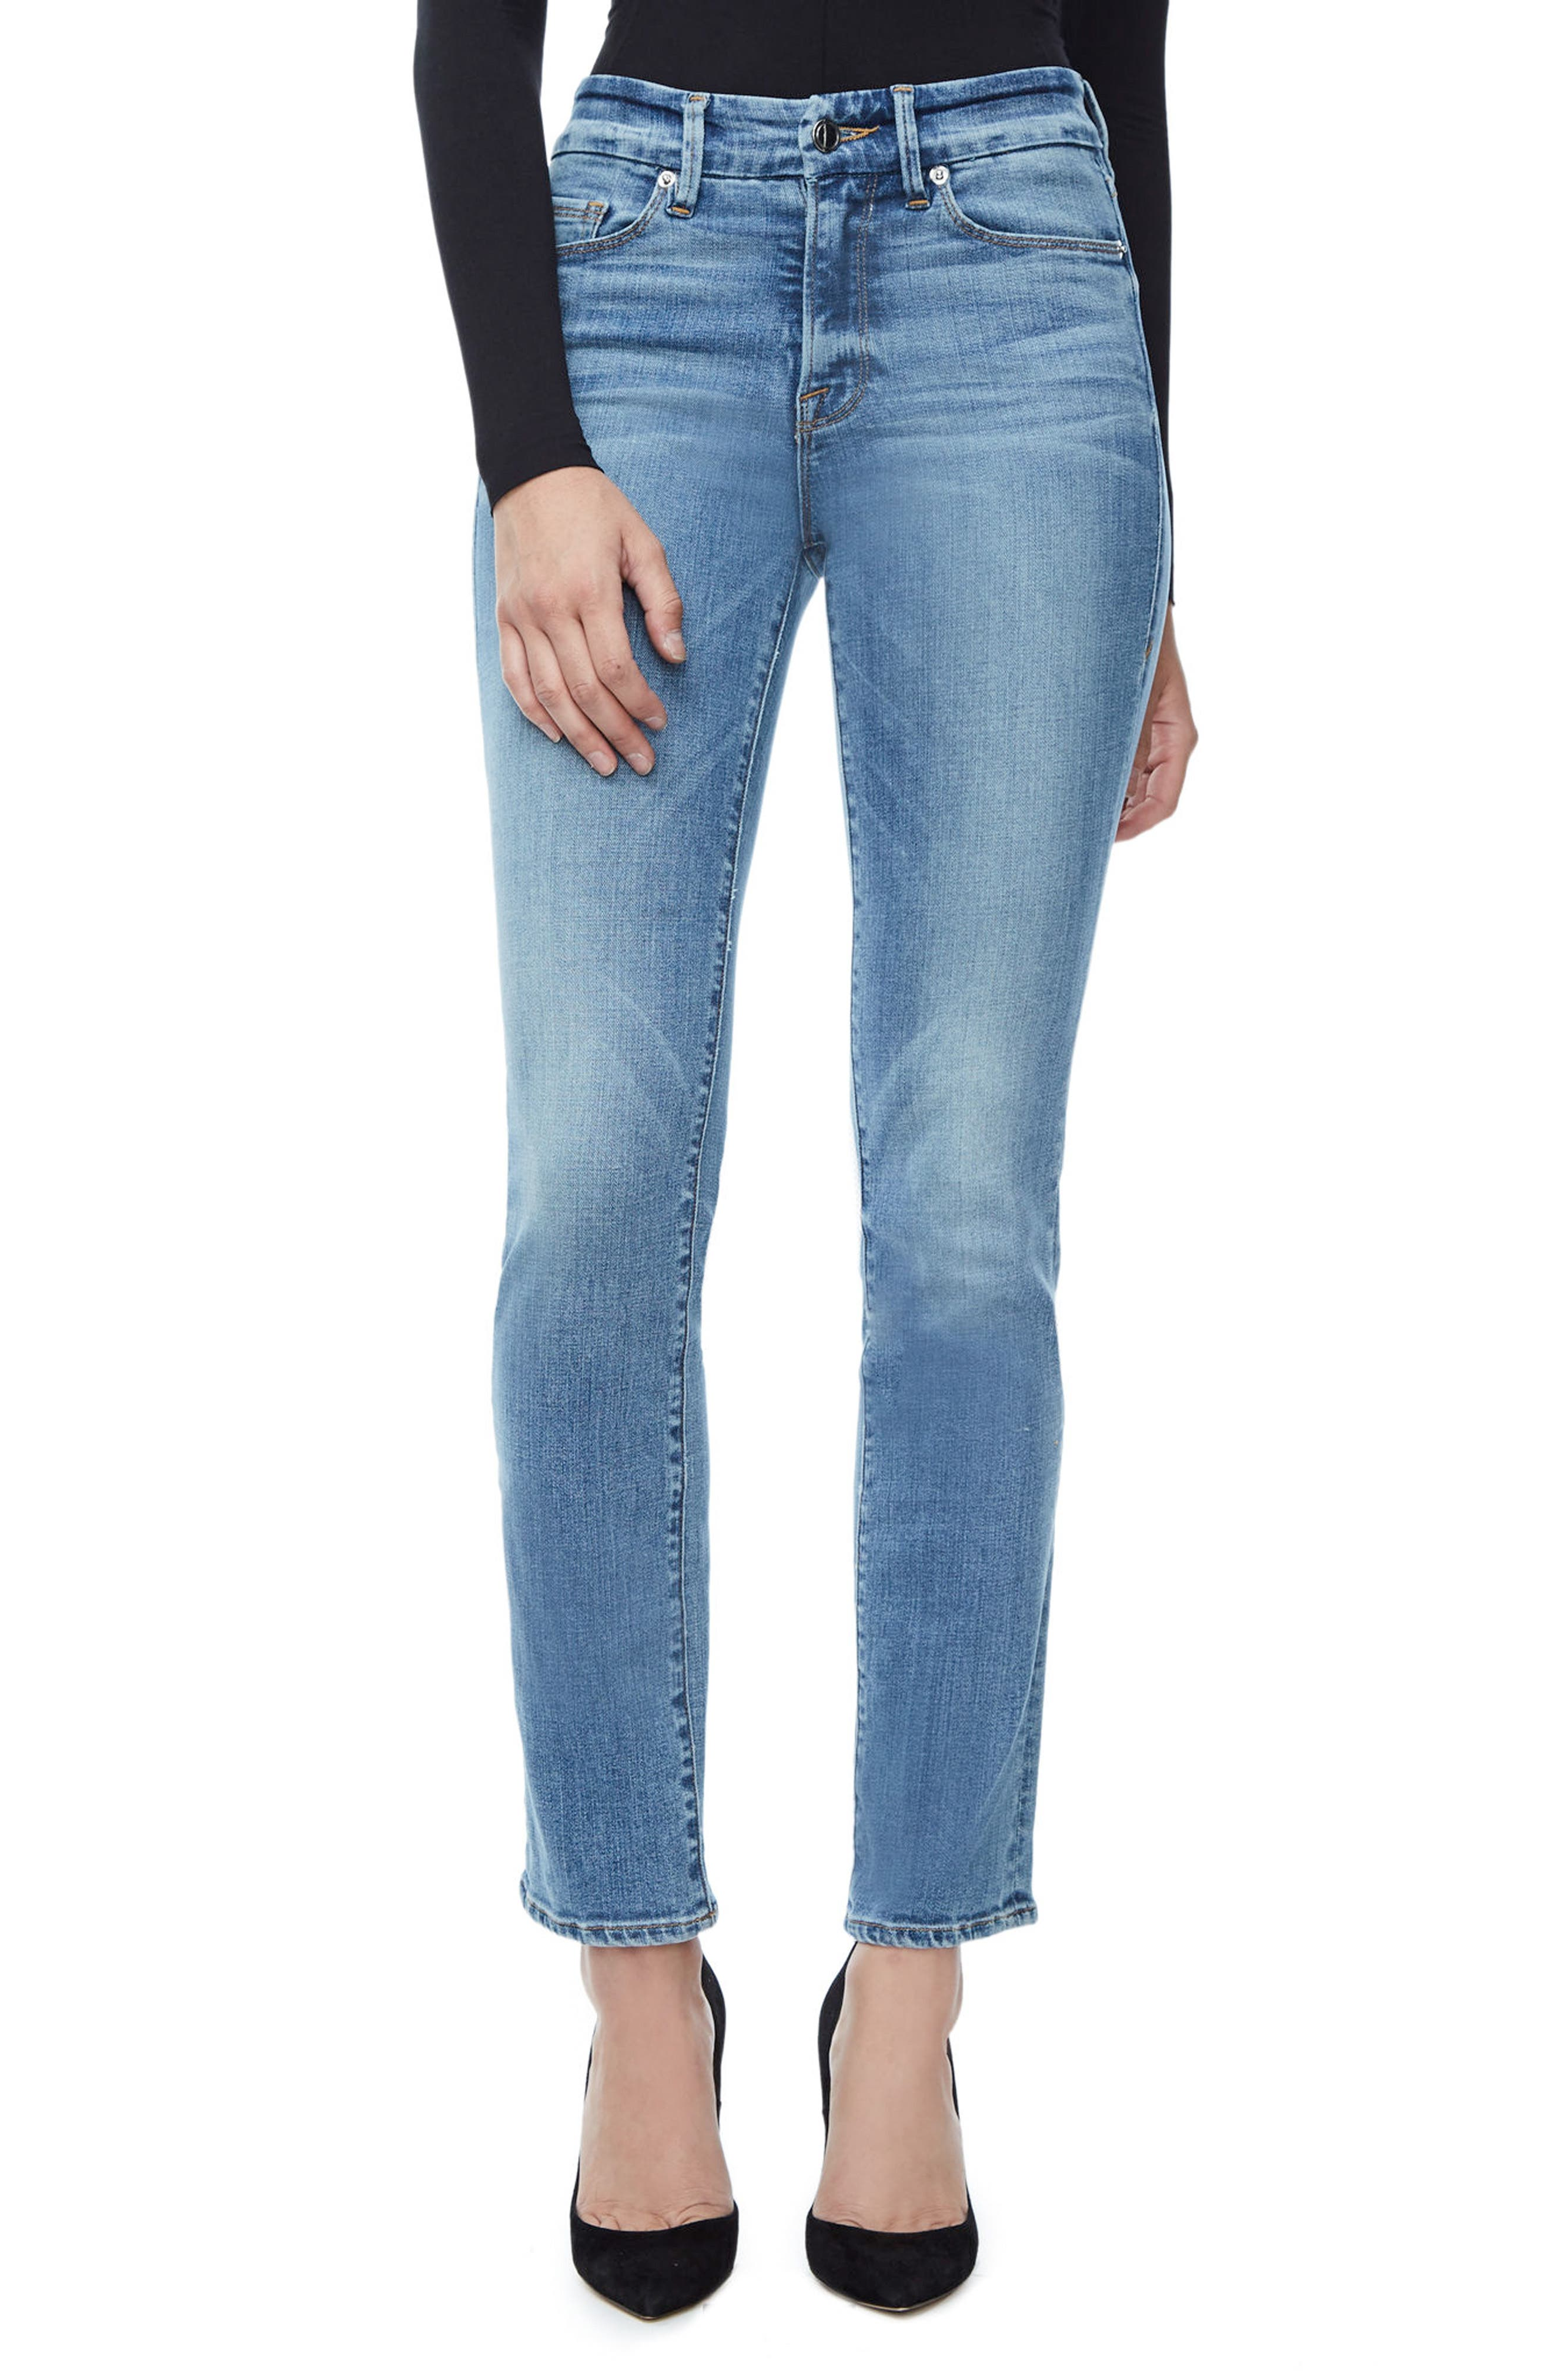 Main Image - Good American Good Straight High Rise Jeans (Blue 087) (Extended Sizes)